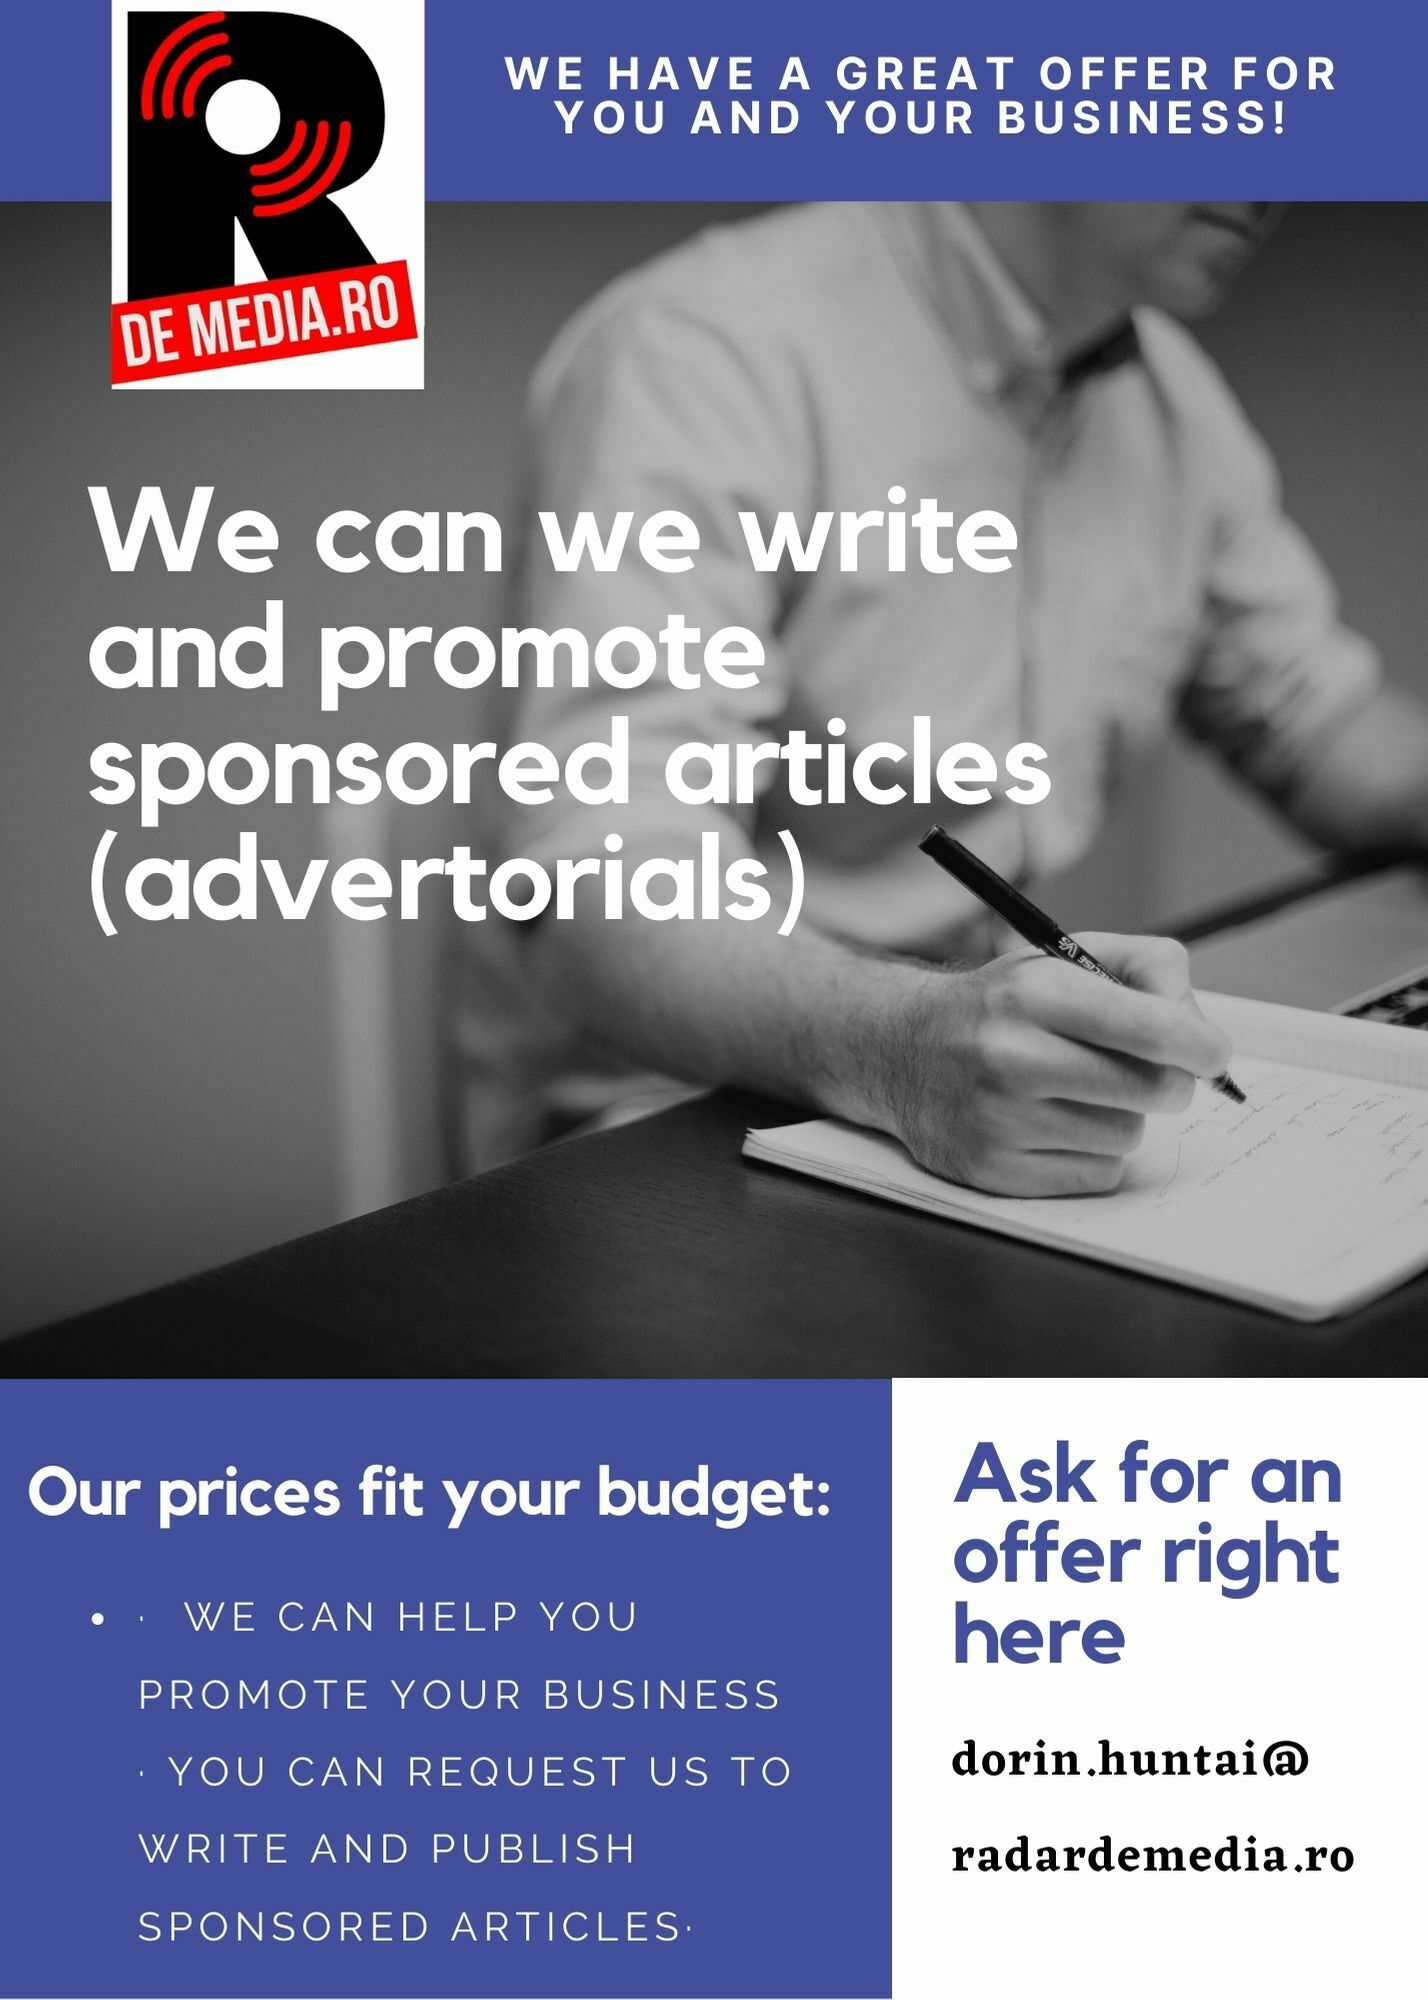 NEW! We write and publish sponsored articles for your budget!